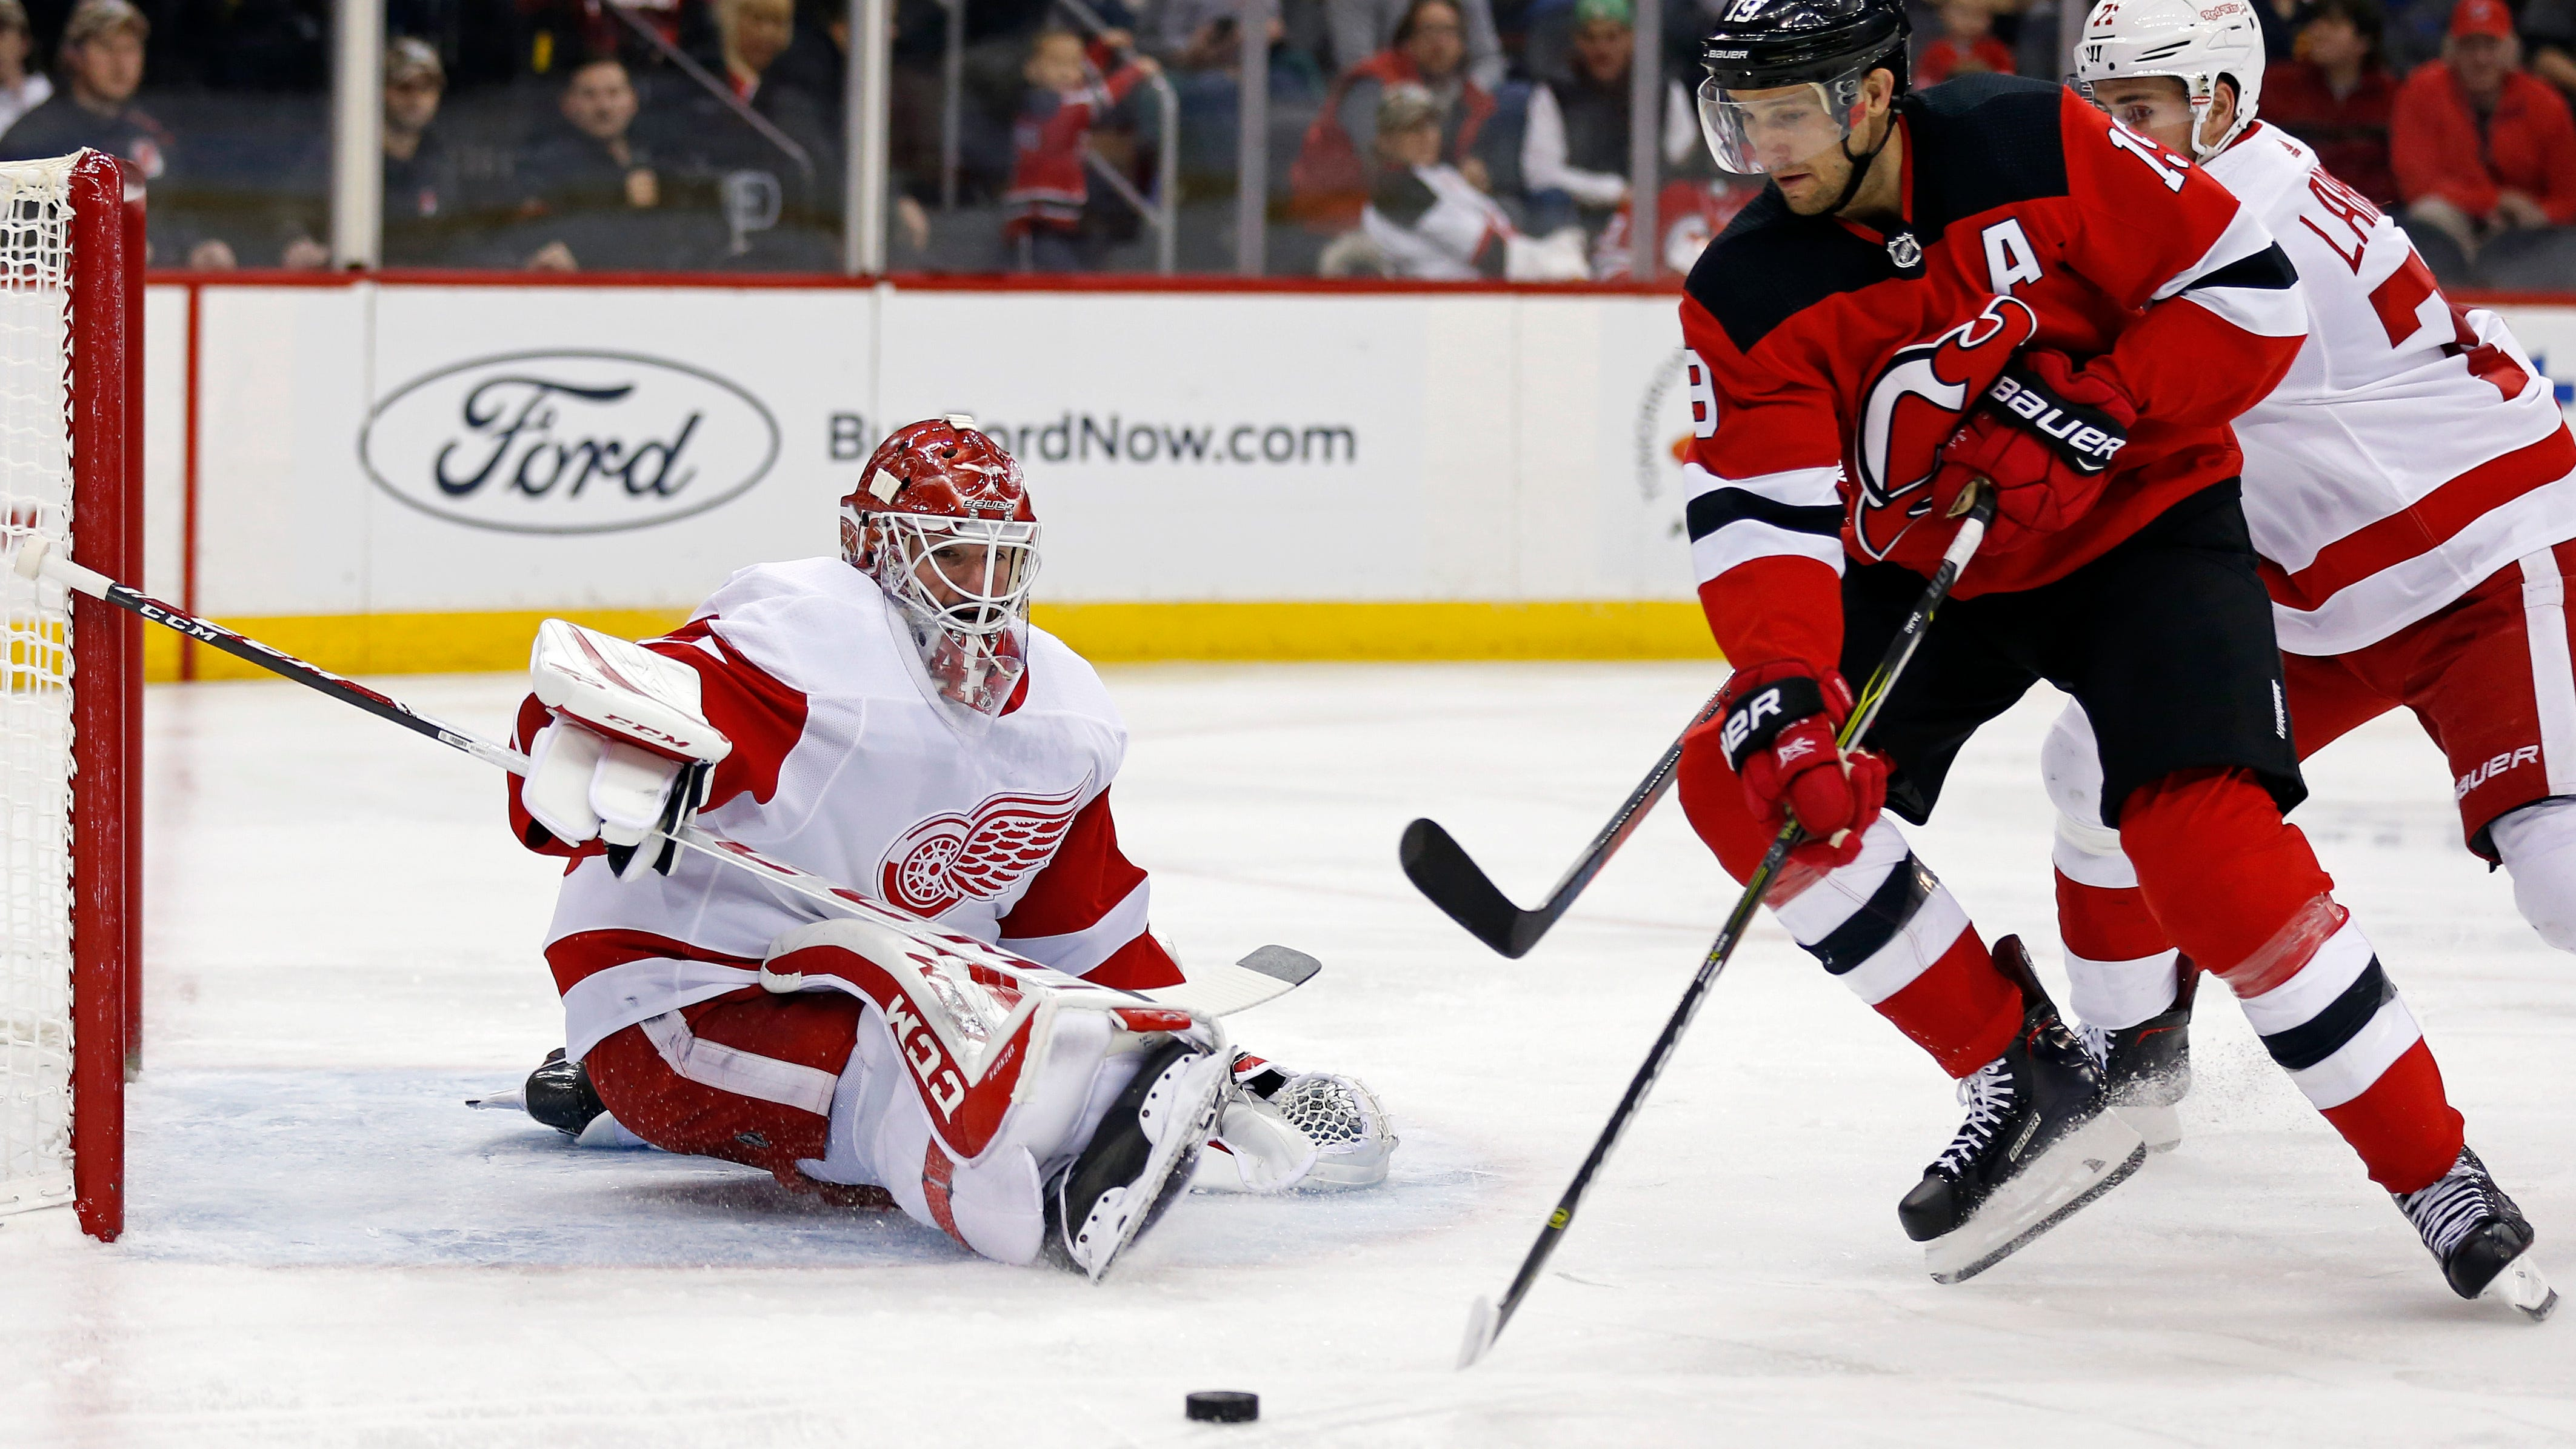 Detroit Red Wings goaltender Jonathan Bernier made 38 saves in Saturday's 3-2 overtime victory over the New Jersey Devils.